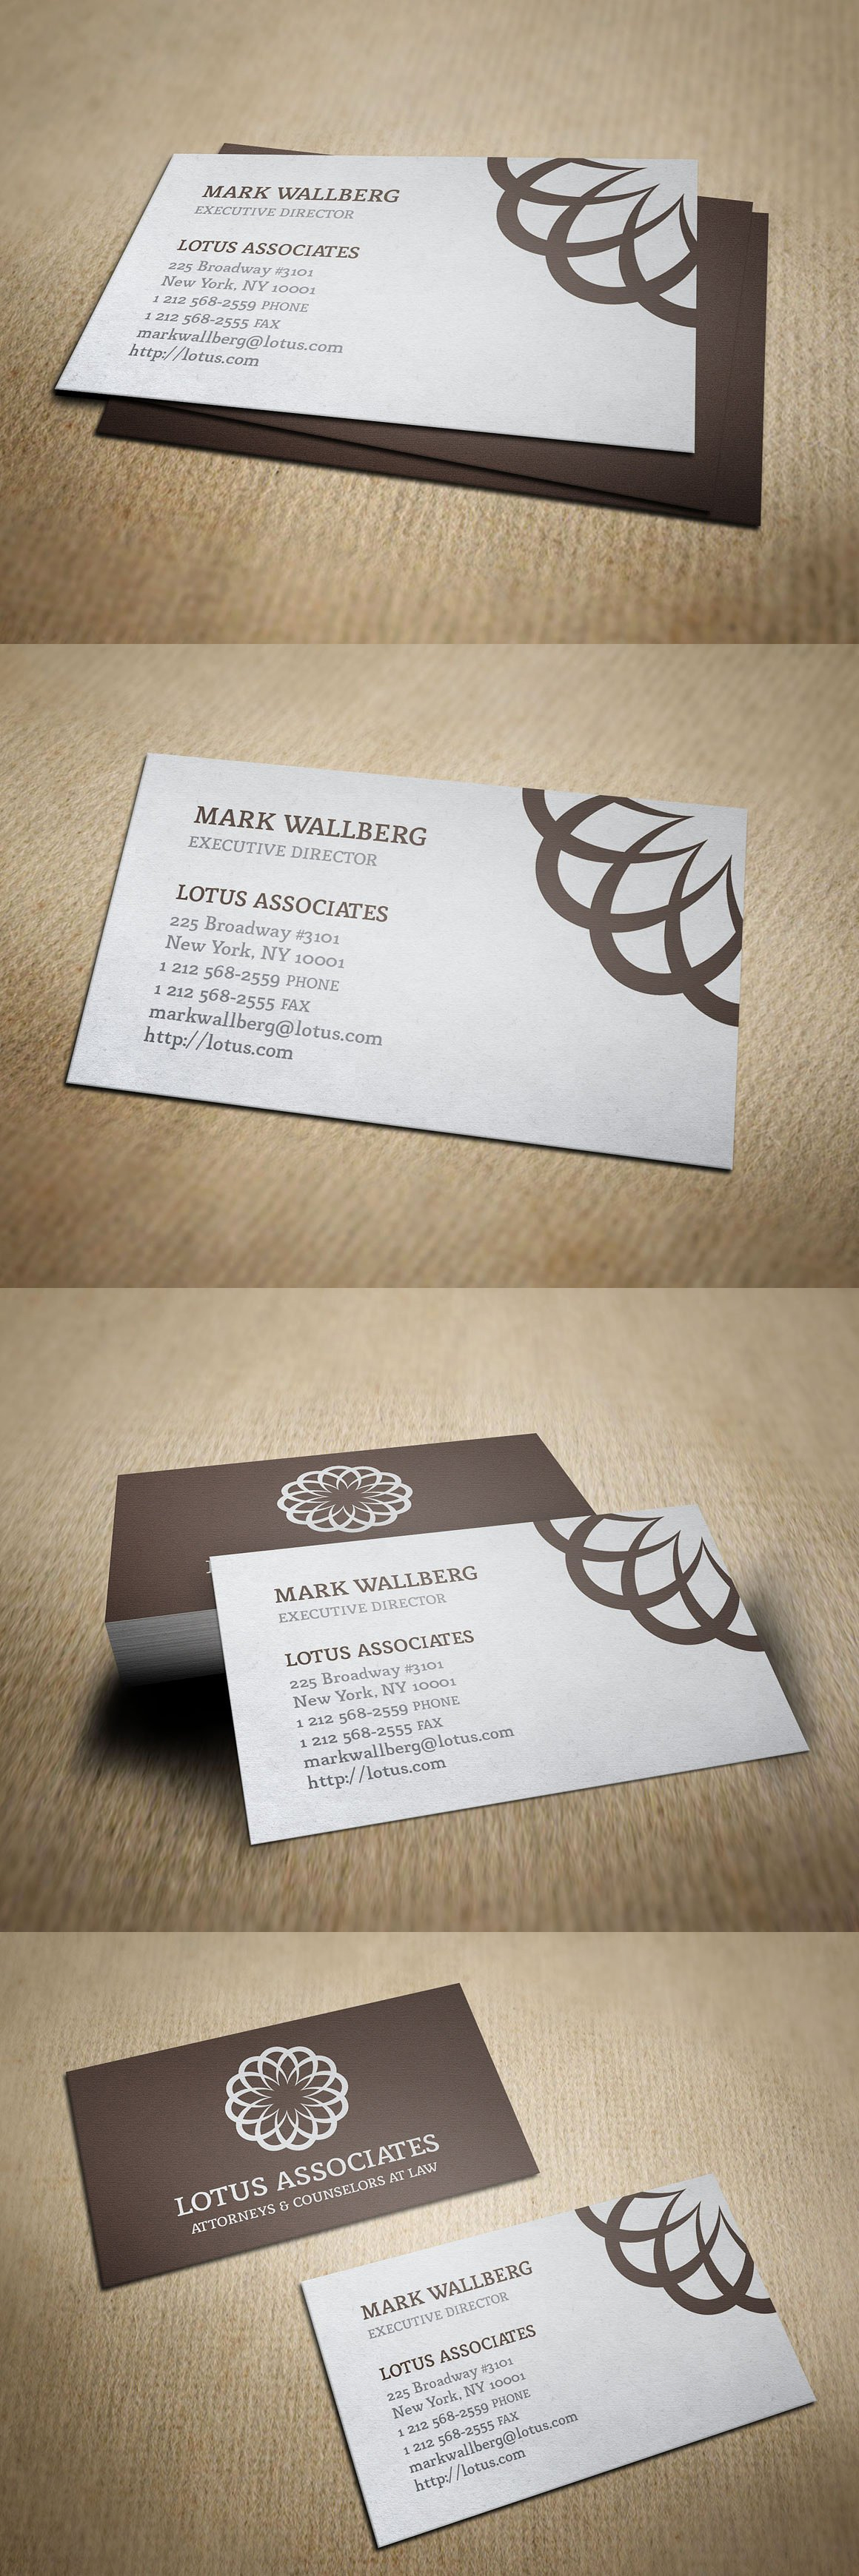 Vintage Law Firm Business Card | Business cards, Card templates and ...